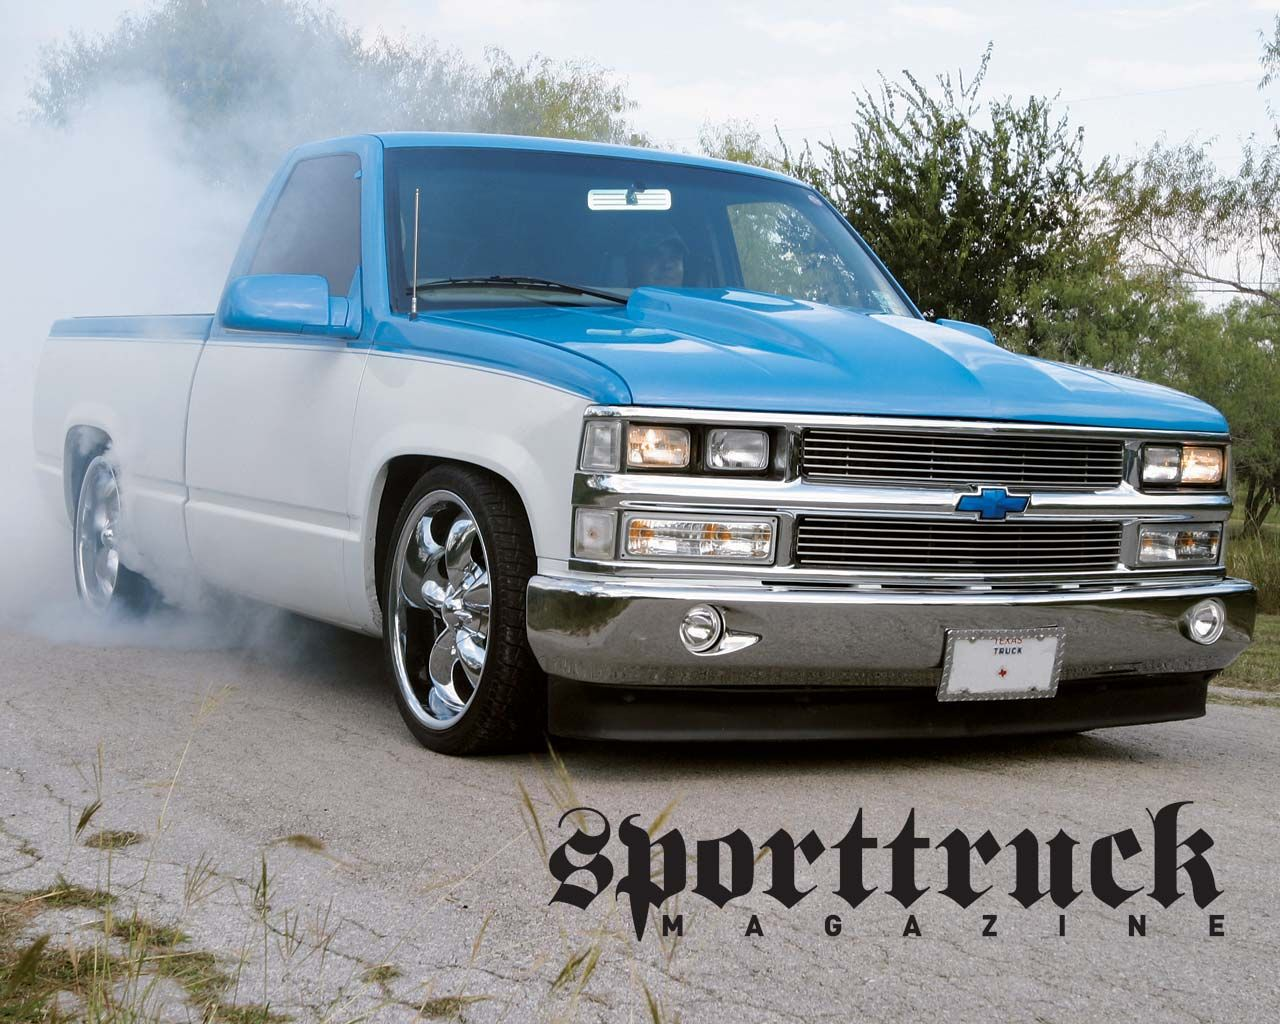 Chevy Truck Wallpapers Sport Truck Wallpapers Chevy Trucks